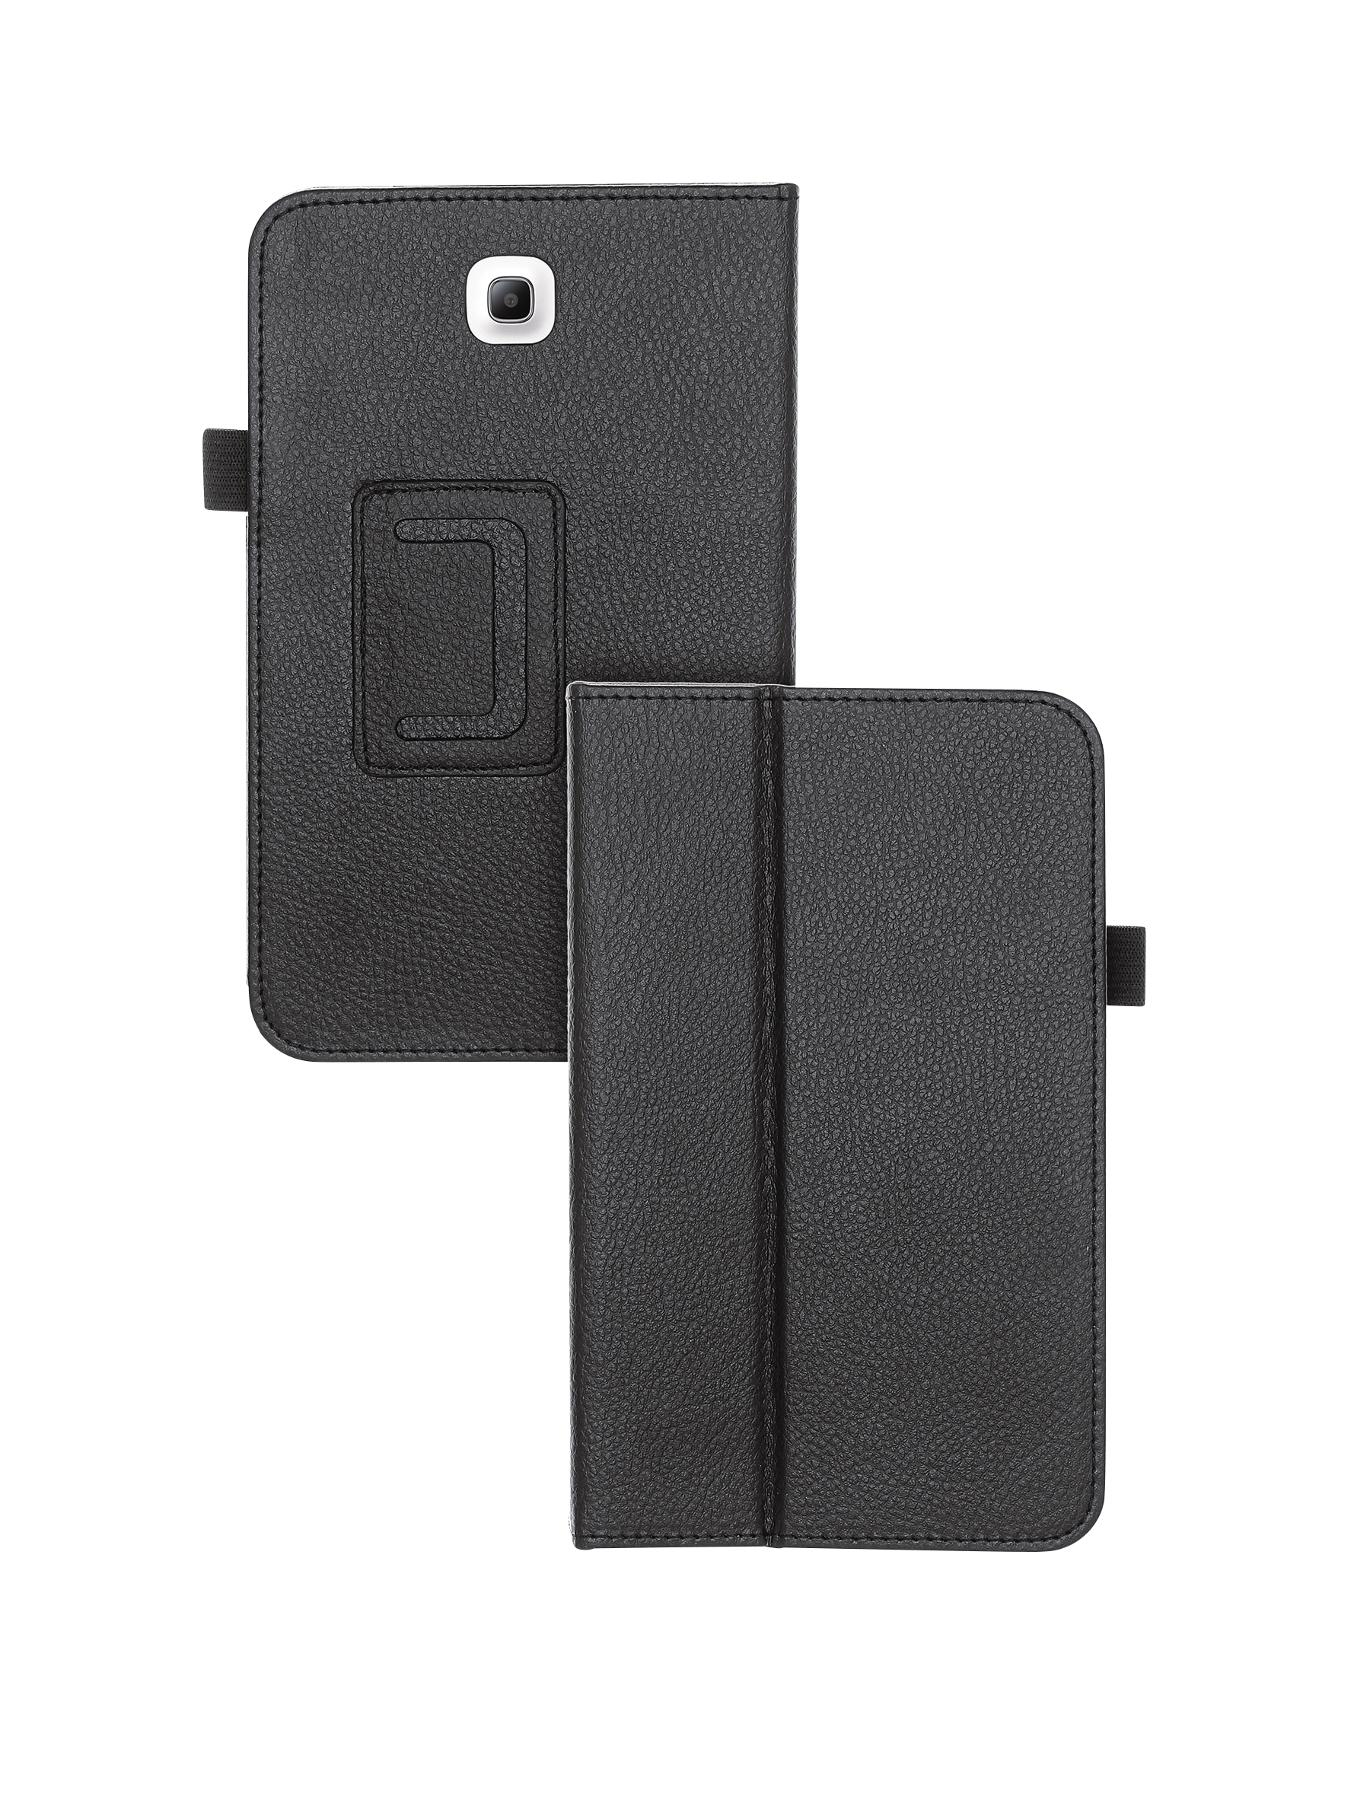 Samsung Galaxy Tab 3 8 inch Folio Flip Case - Black